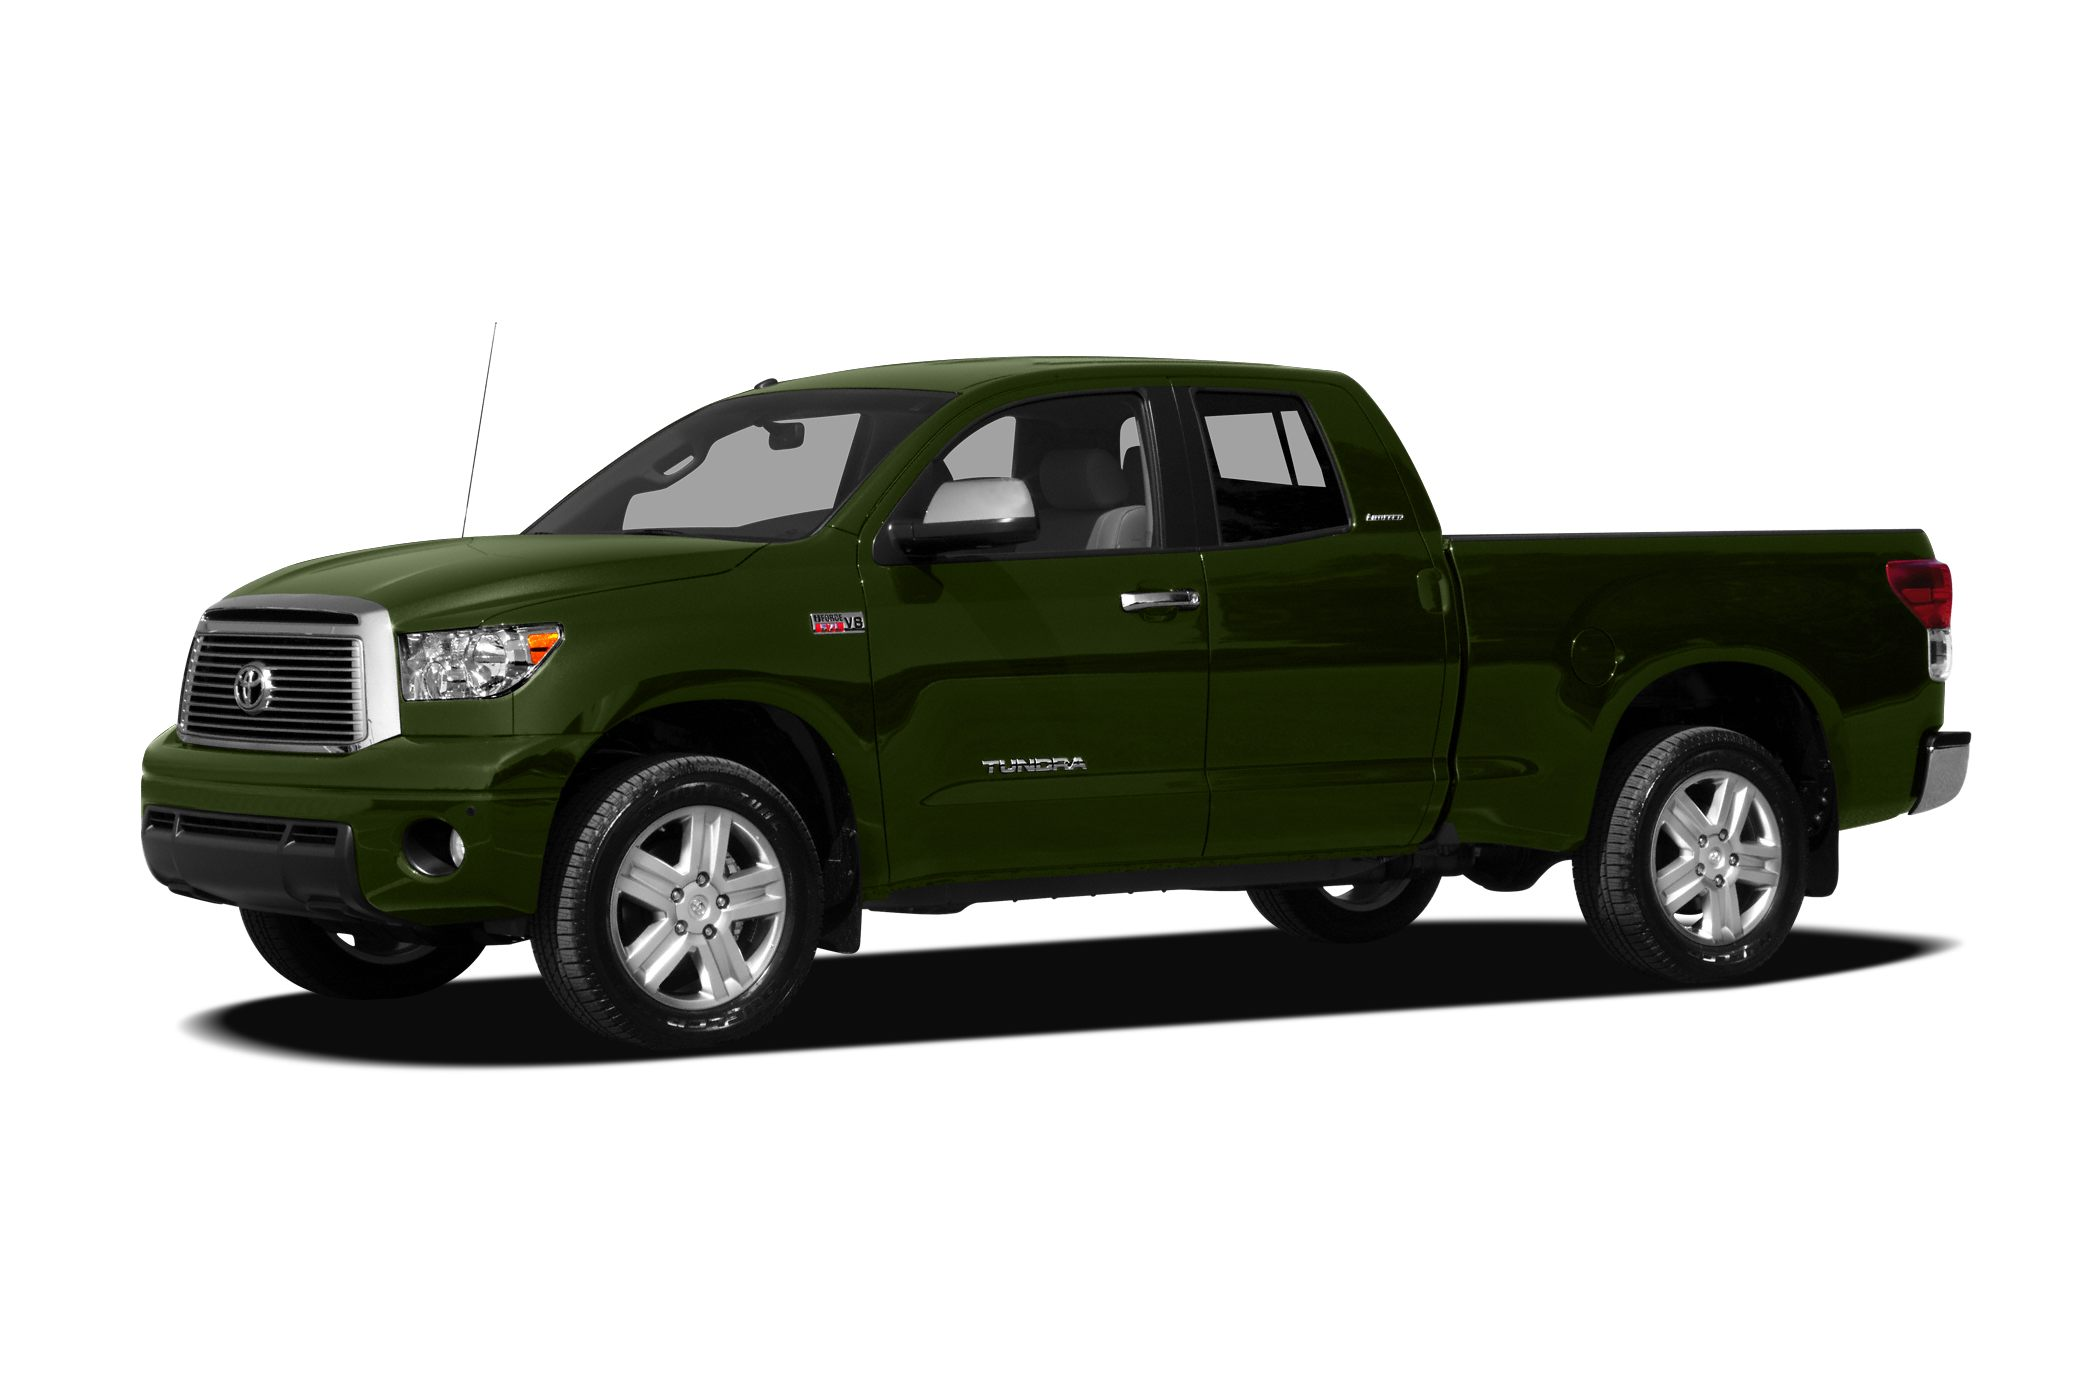 2011 Toyota Tundra Grade Grab a deal on this 2011 Toyota Tundra 2WD Truck Base while we have it R